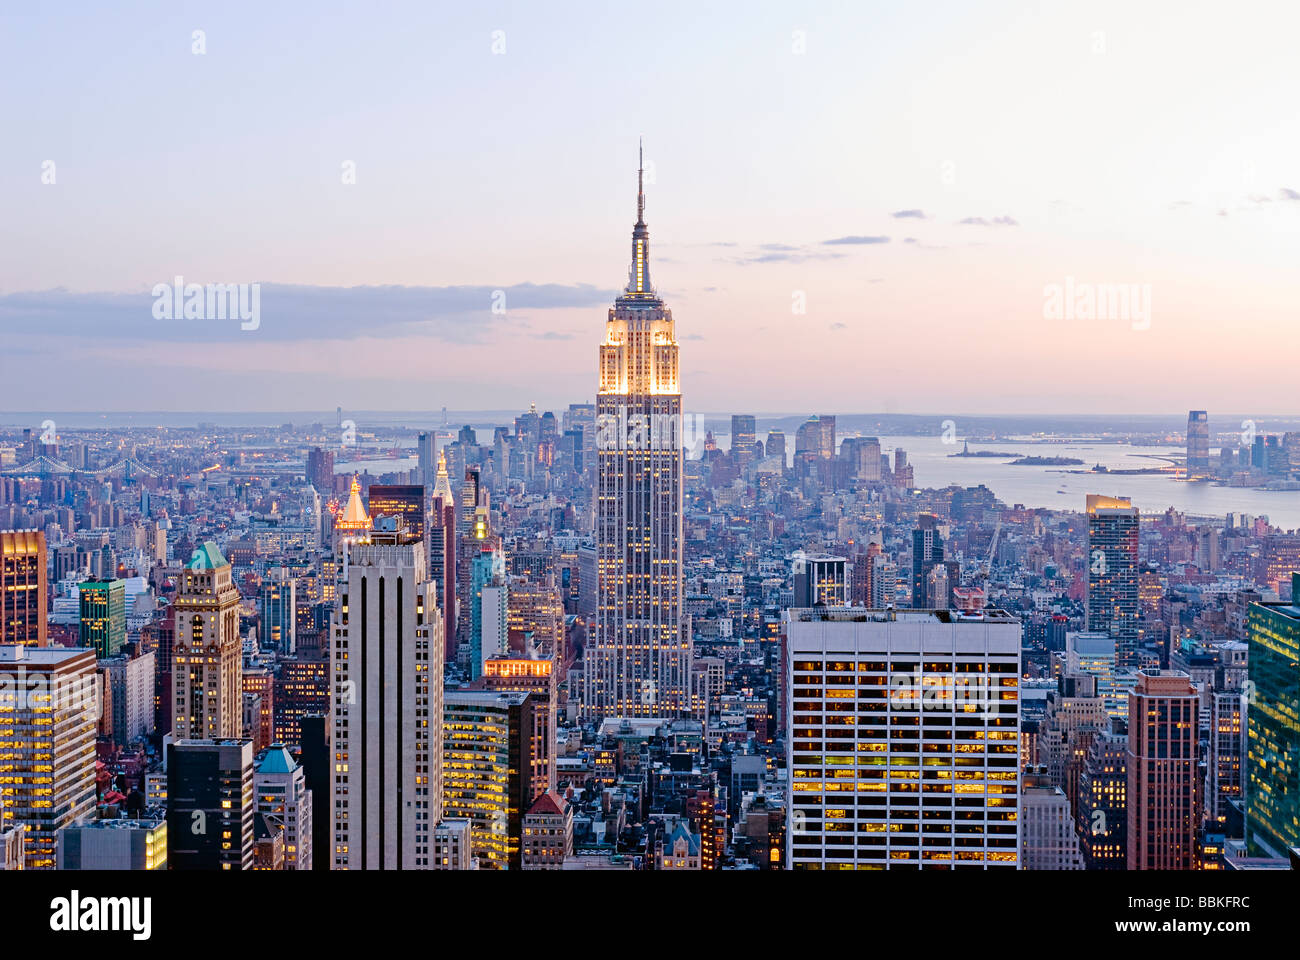 Aerial view of the Manhattan Skyline with the Empire State Building, New York City. - Stock Image